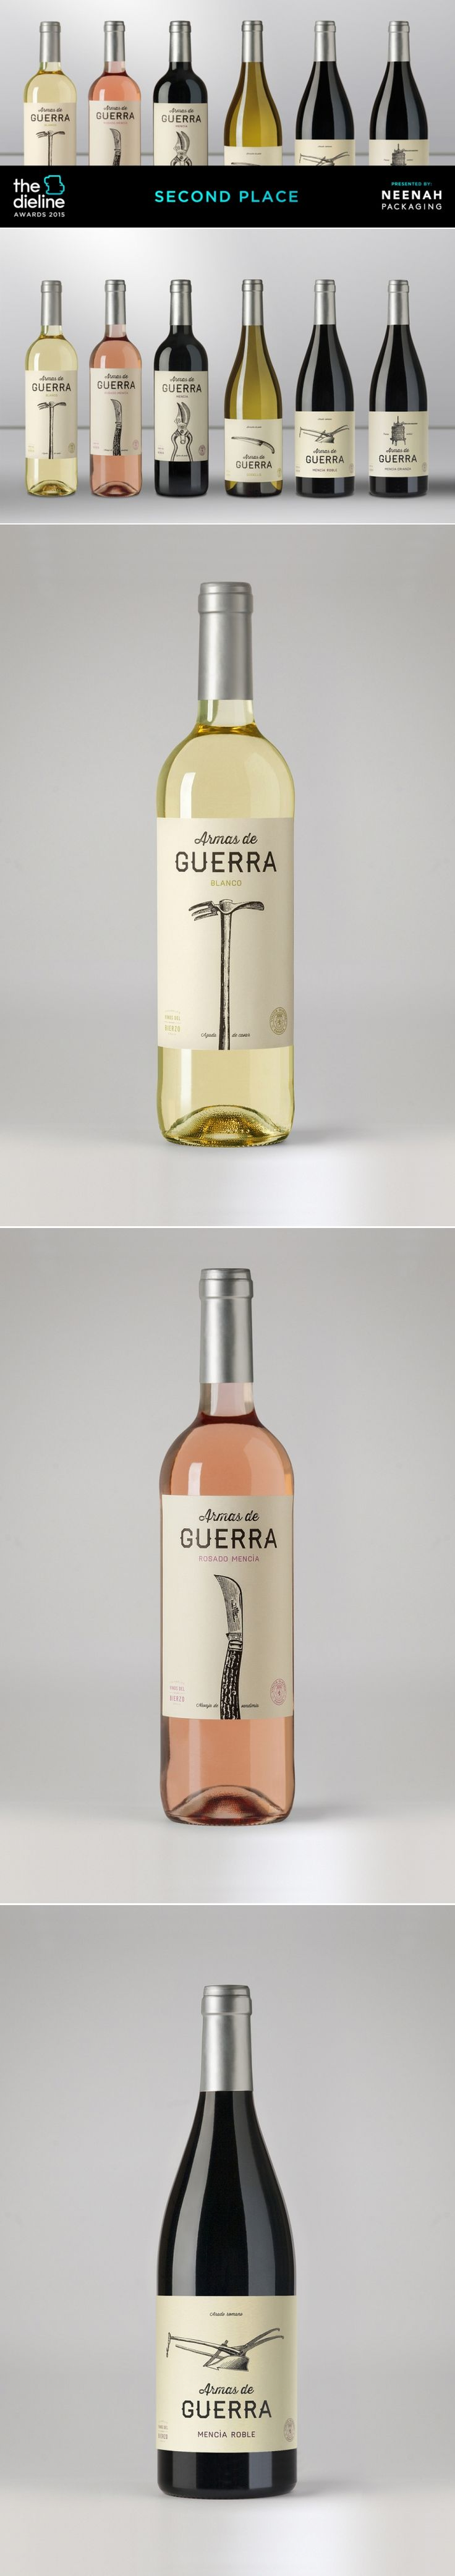 The Dieline Awards 2015: 2nd Place Wine, Champagne: Armas de Guerra — The Dieline | Packaging & Branding Design & Innovation News